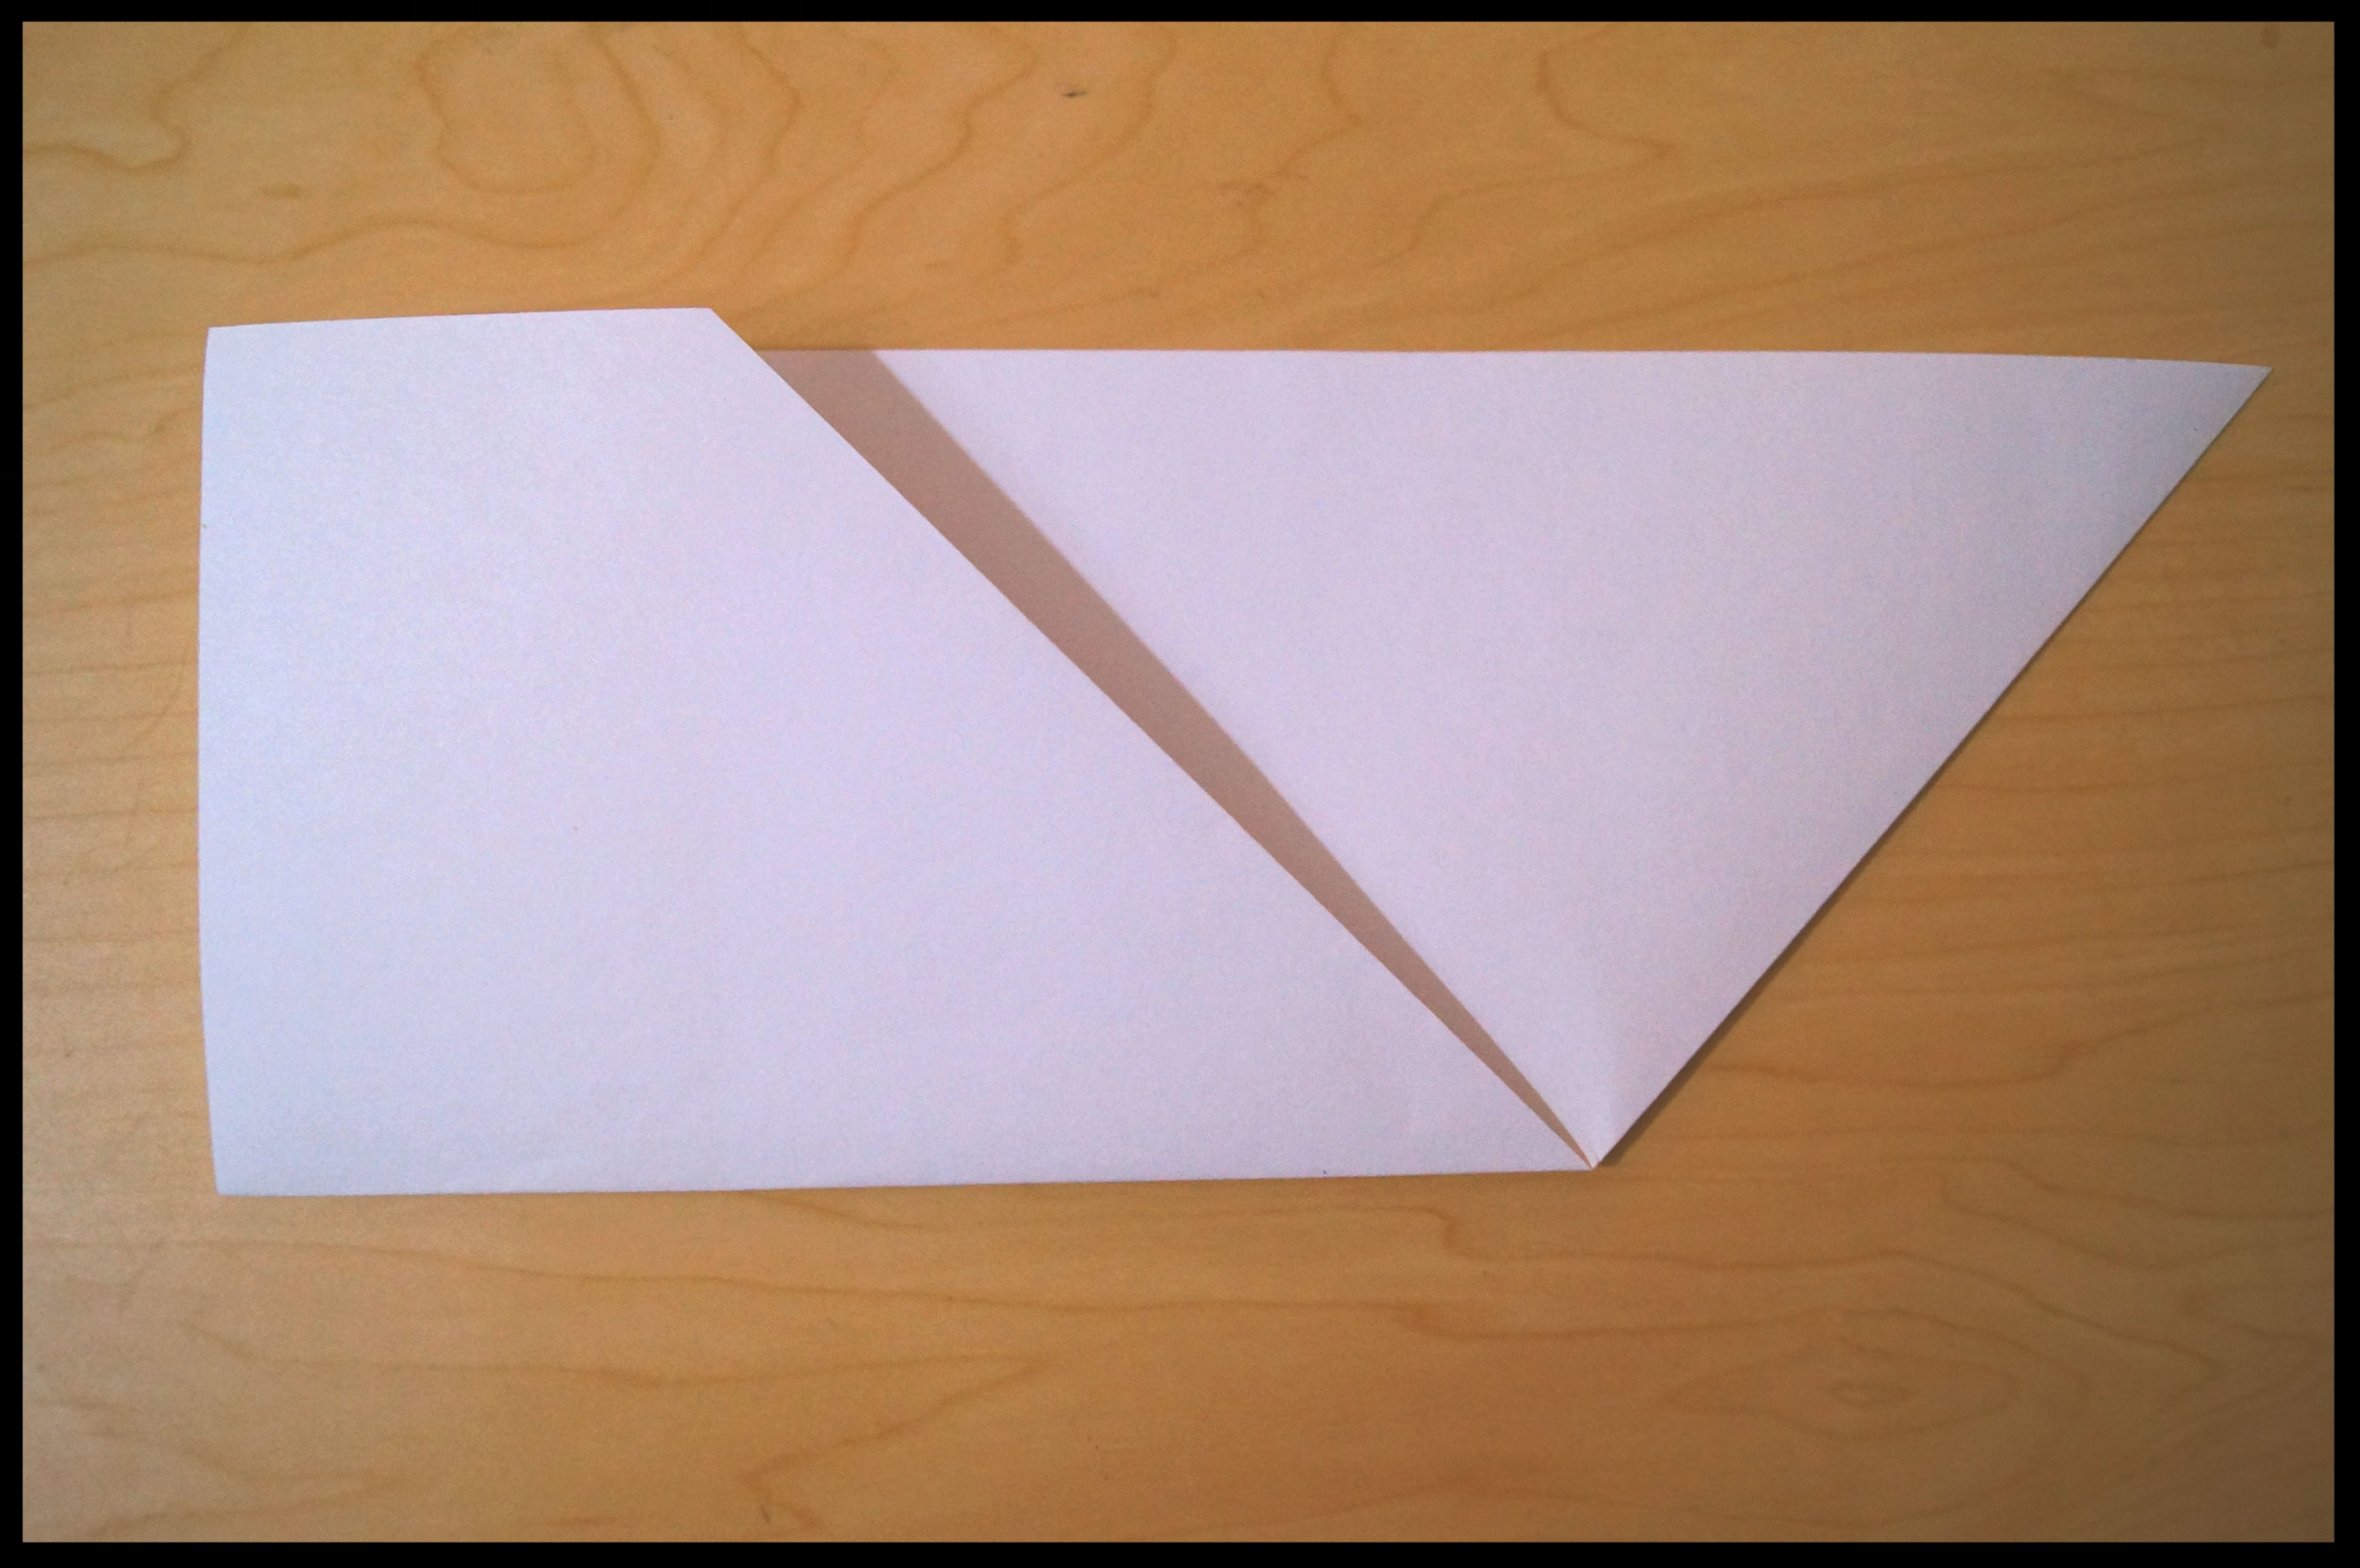 3. Fold the paper in half horizontally by bringing the bottom edge up to the top edge. Turn over.